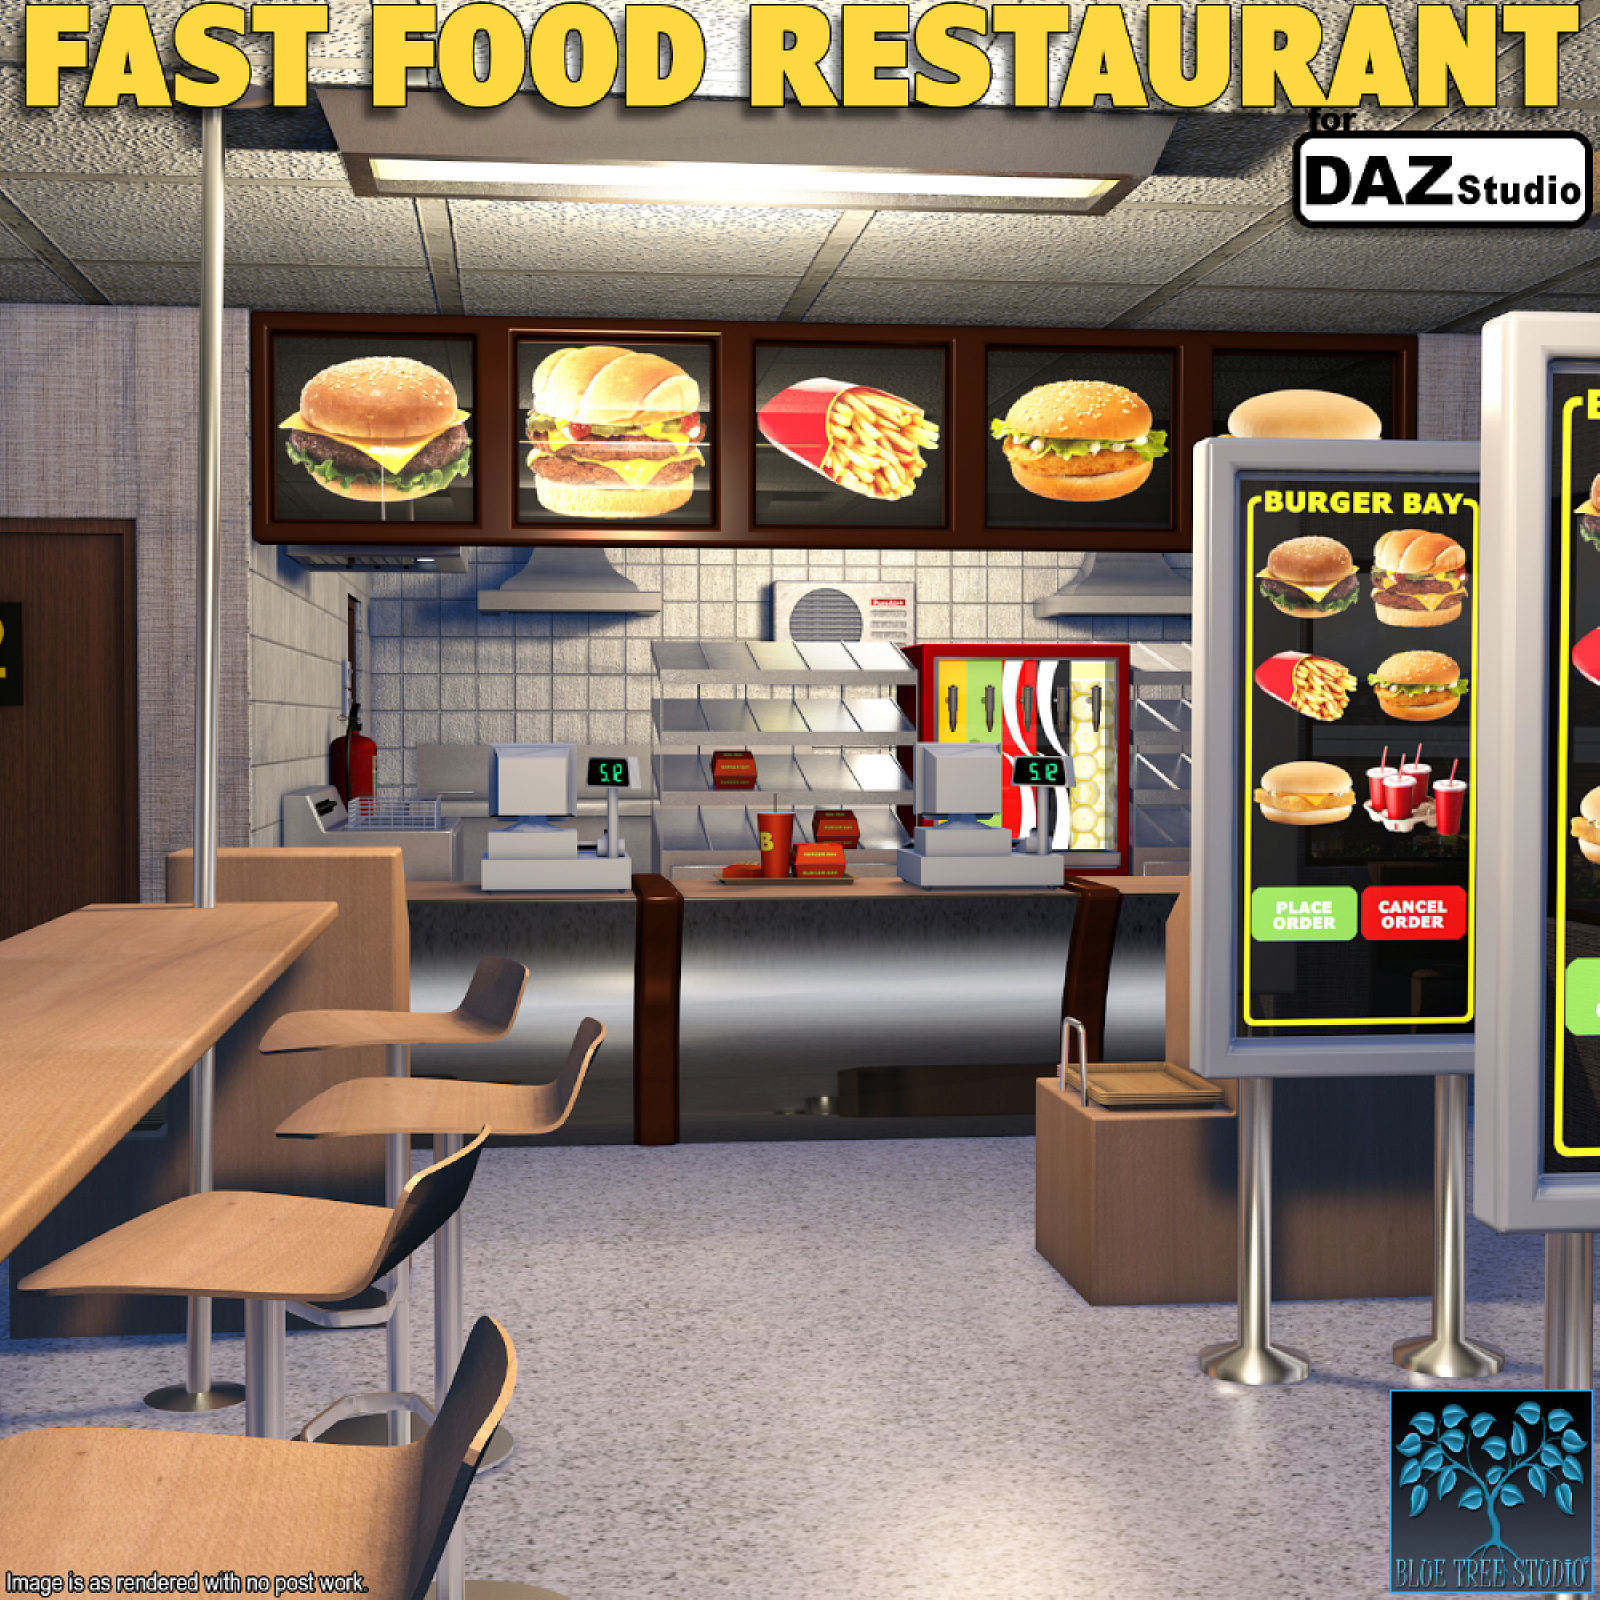 Fast Food Restaurant for Daz Studio